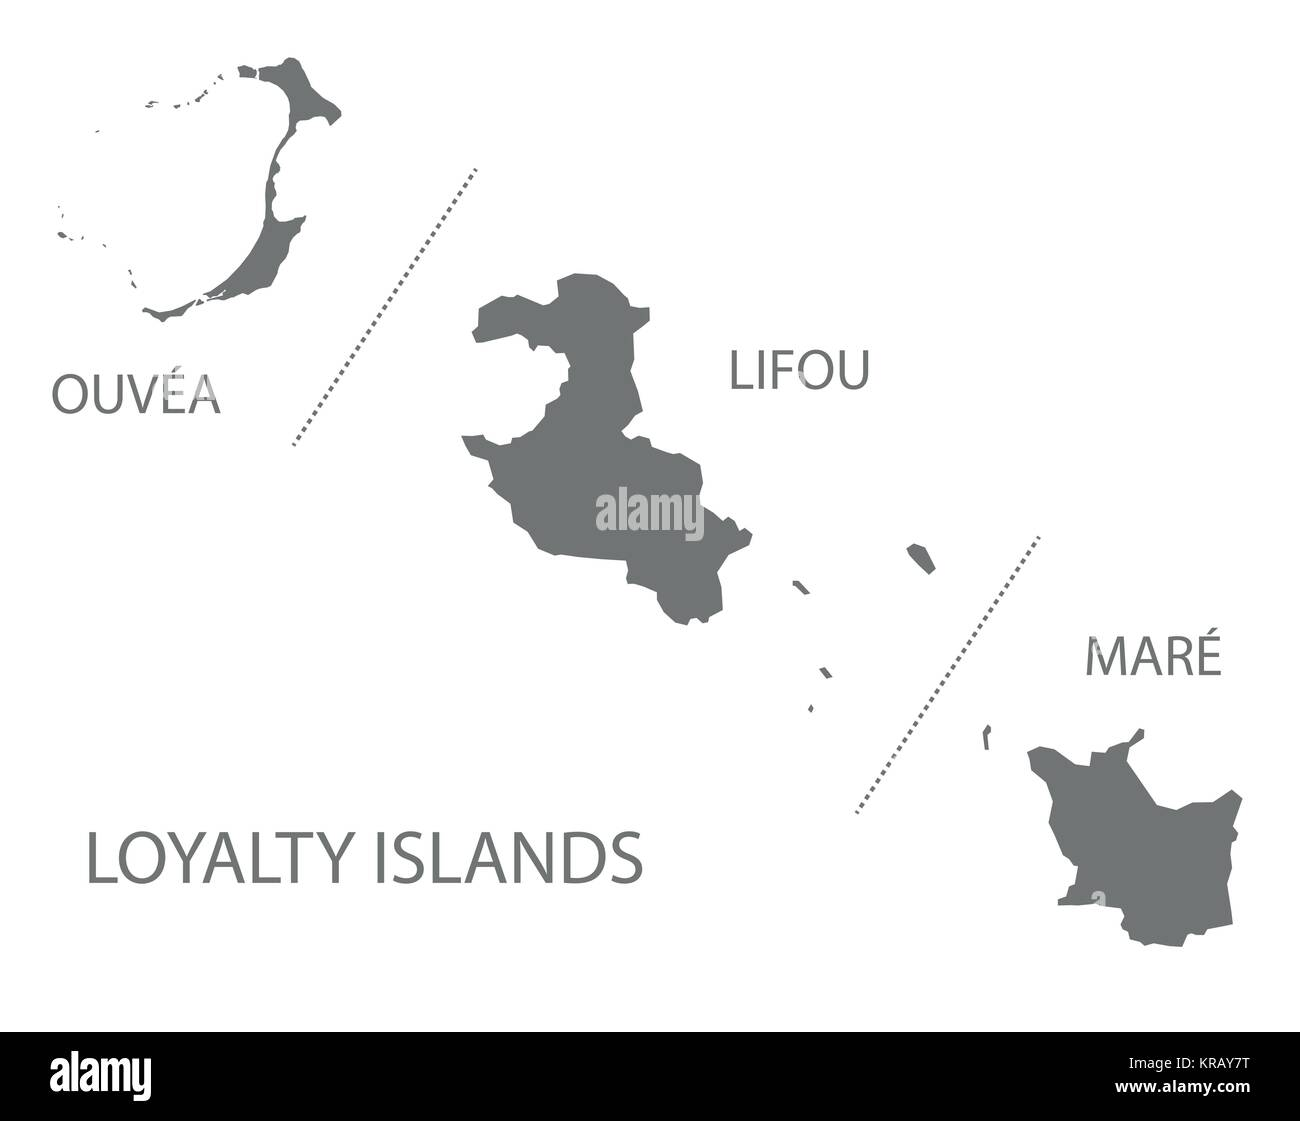 Loyalty islands map of new caledonia grey illustration silhouette loyalty islands map of new caledonia grey illustration silhouette shape gumiabroncs Gallery